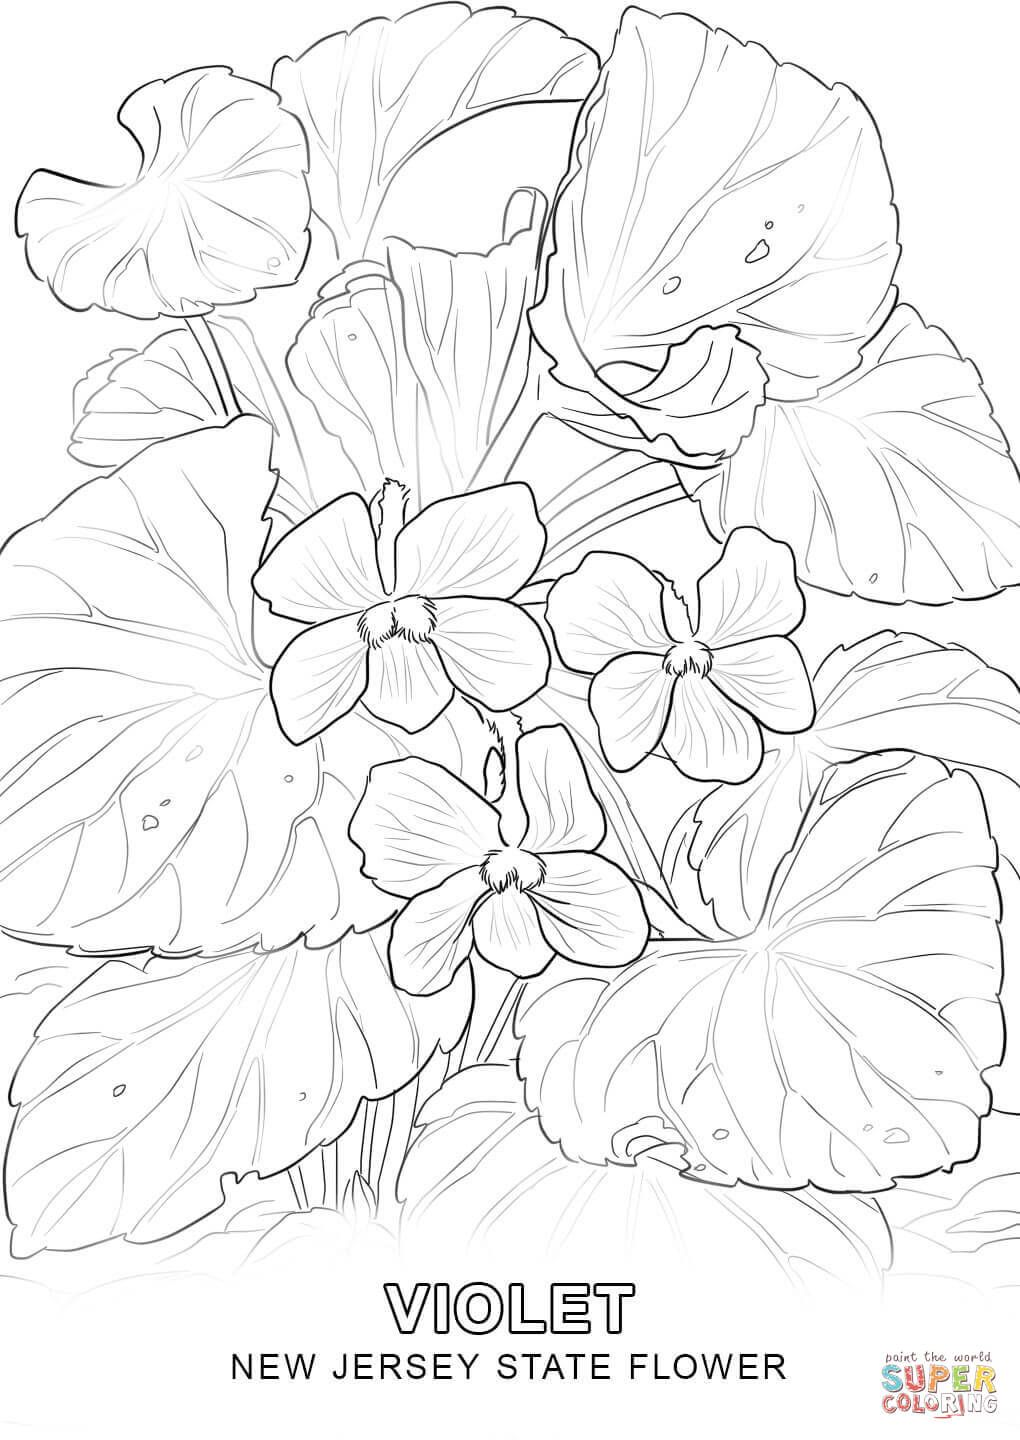 new jersey state flower coloring page butterfly tattoo free rh pinterest com